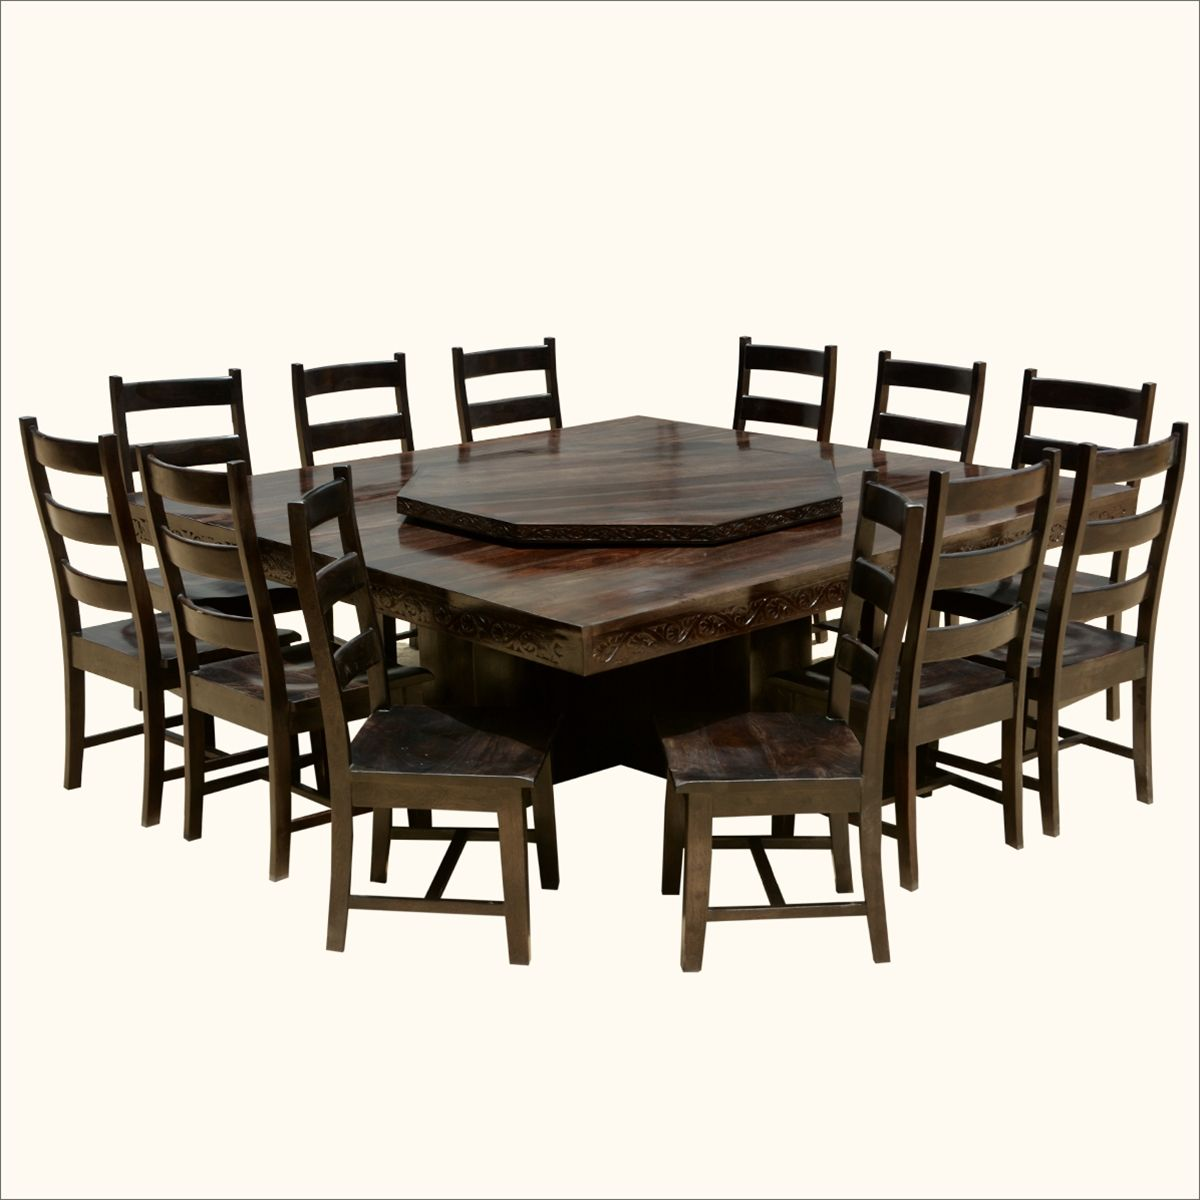 Delightful Modern Pioneer Solid Wood Lazy Susan Pedestal Dining Table U0026 Chair Set